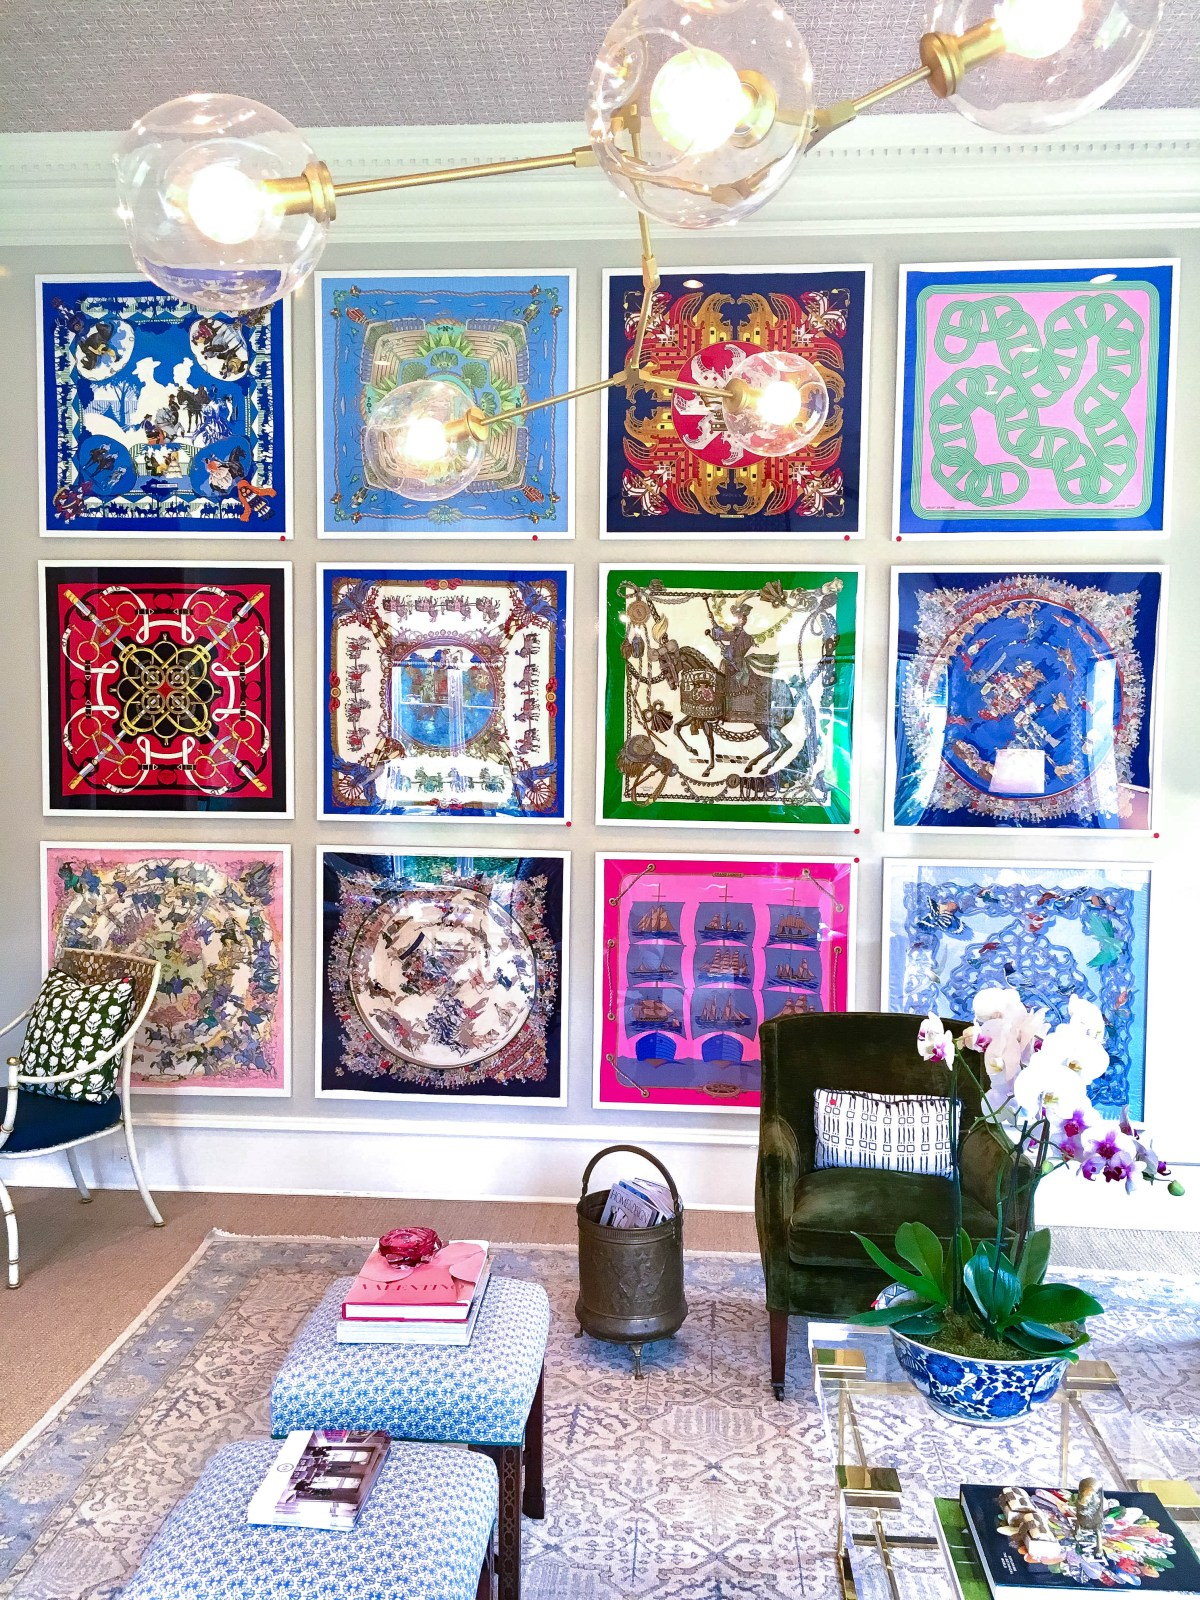 A colorful installation of twelve Hermes scarves with matching white framing creates an eye-catching art display in this ladies lounge.